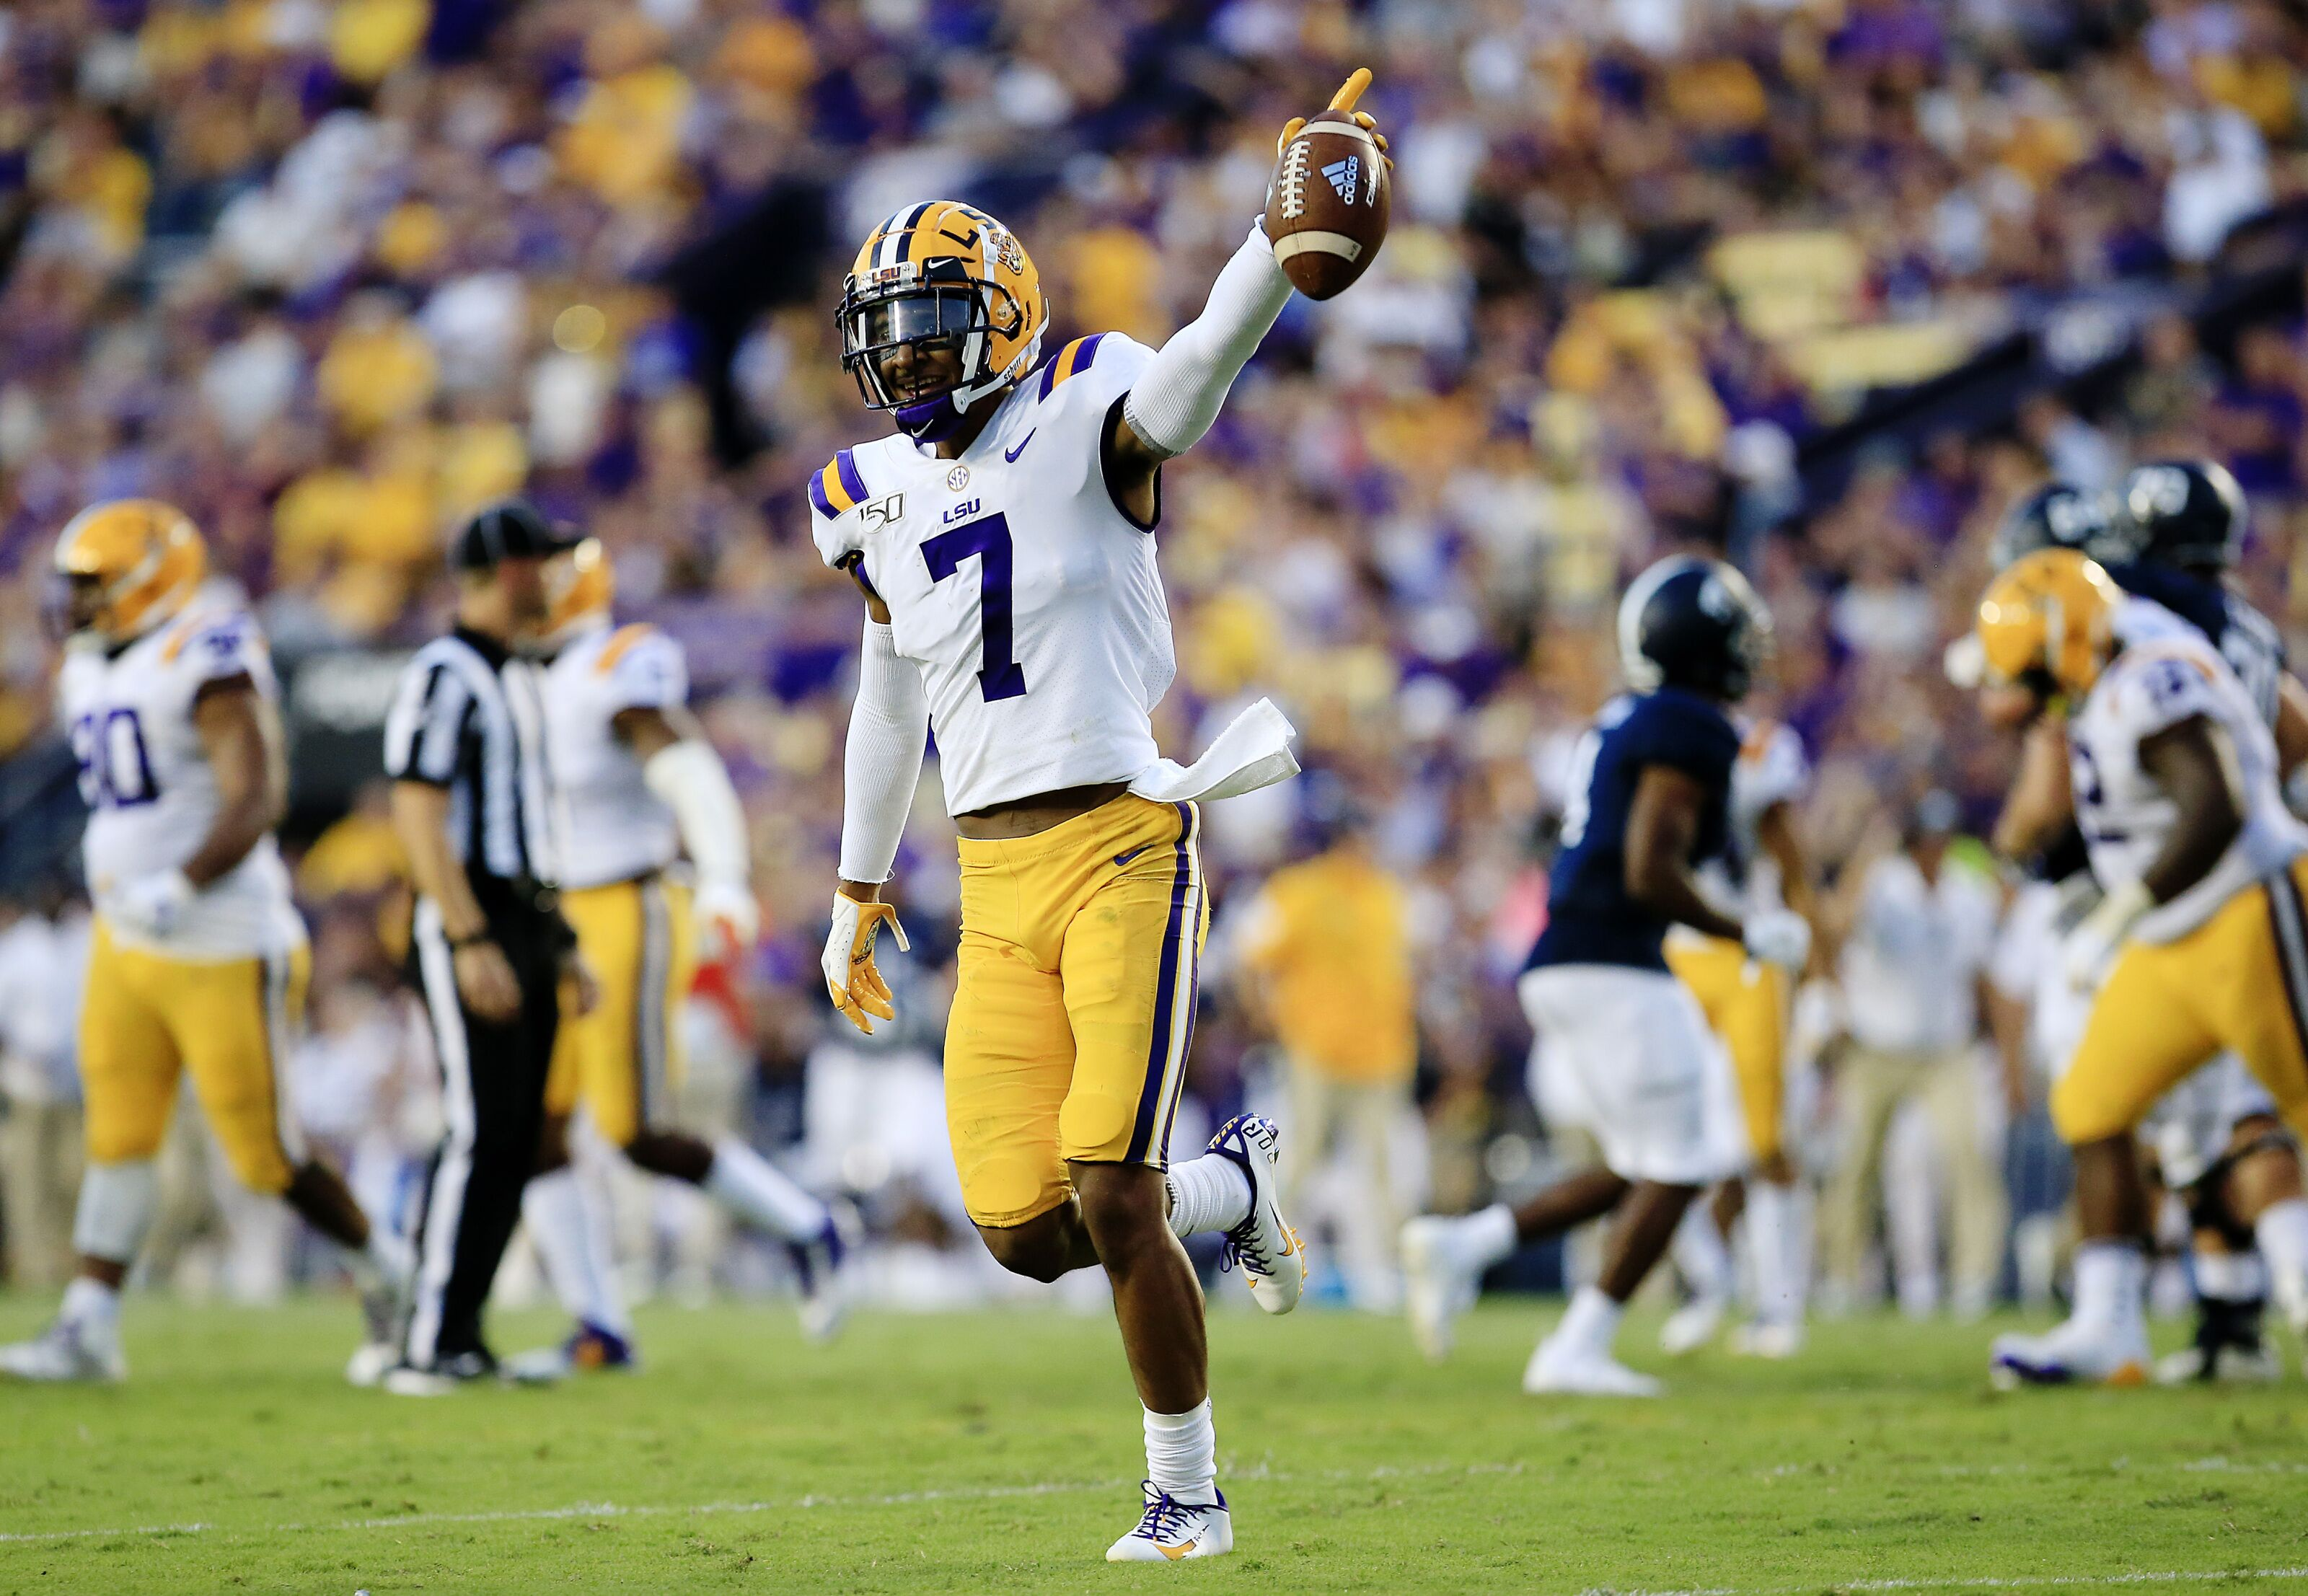 LSU safety Grant Delpit officially declares for 2020 NFL Draft